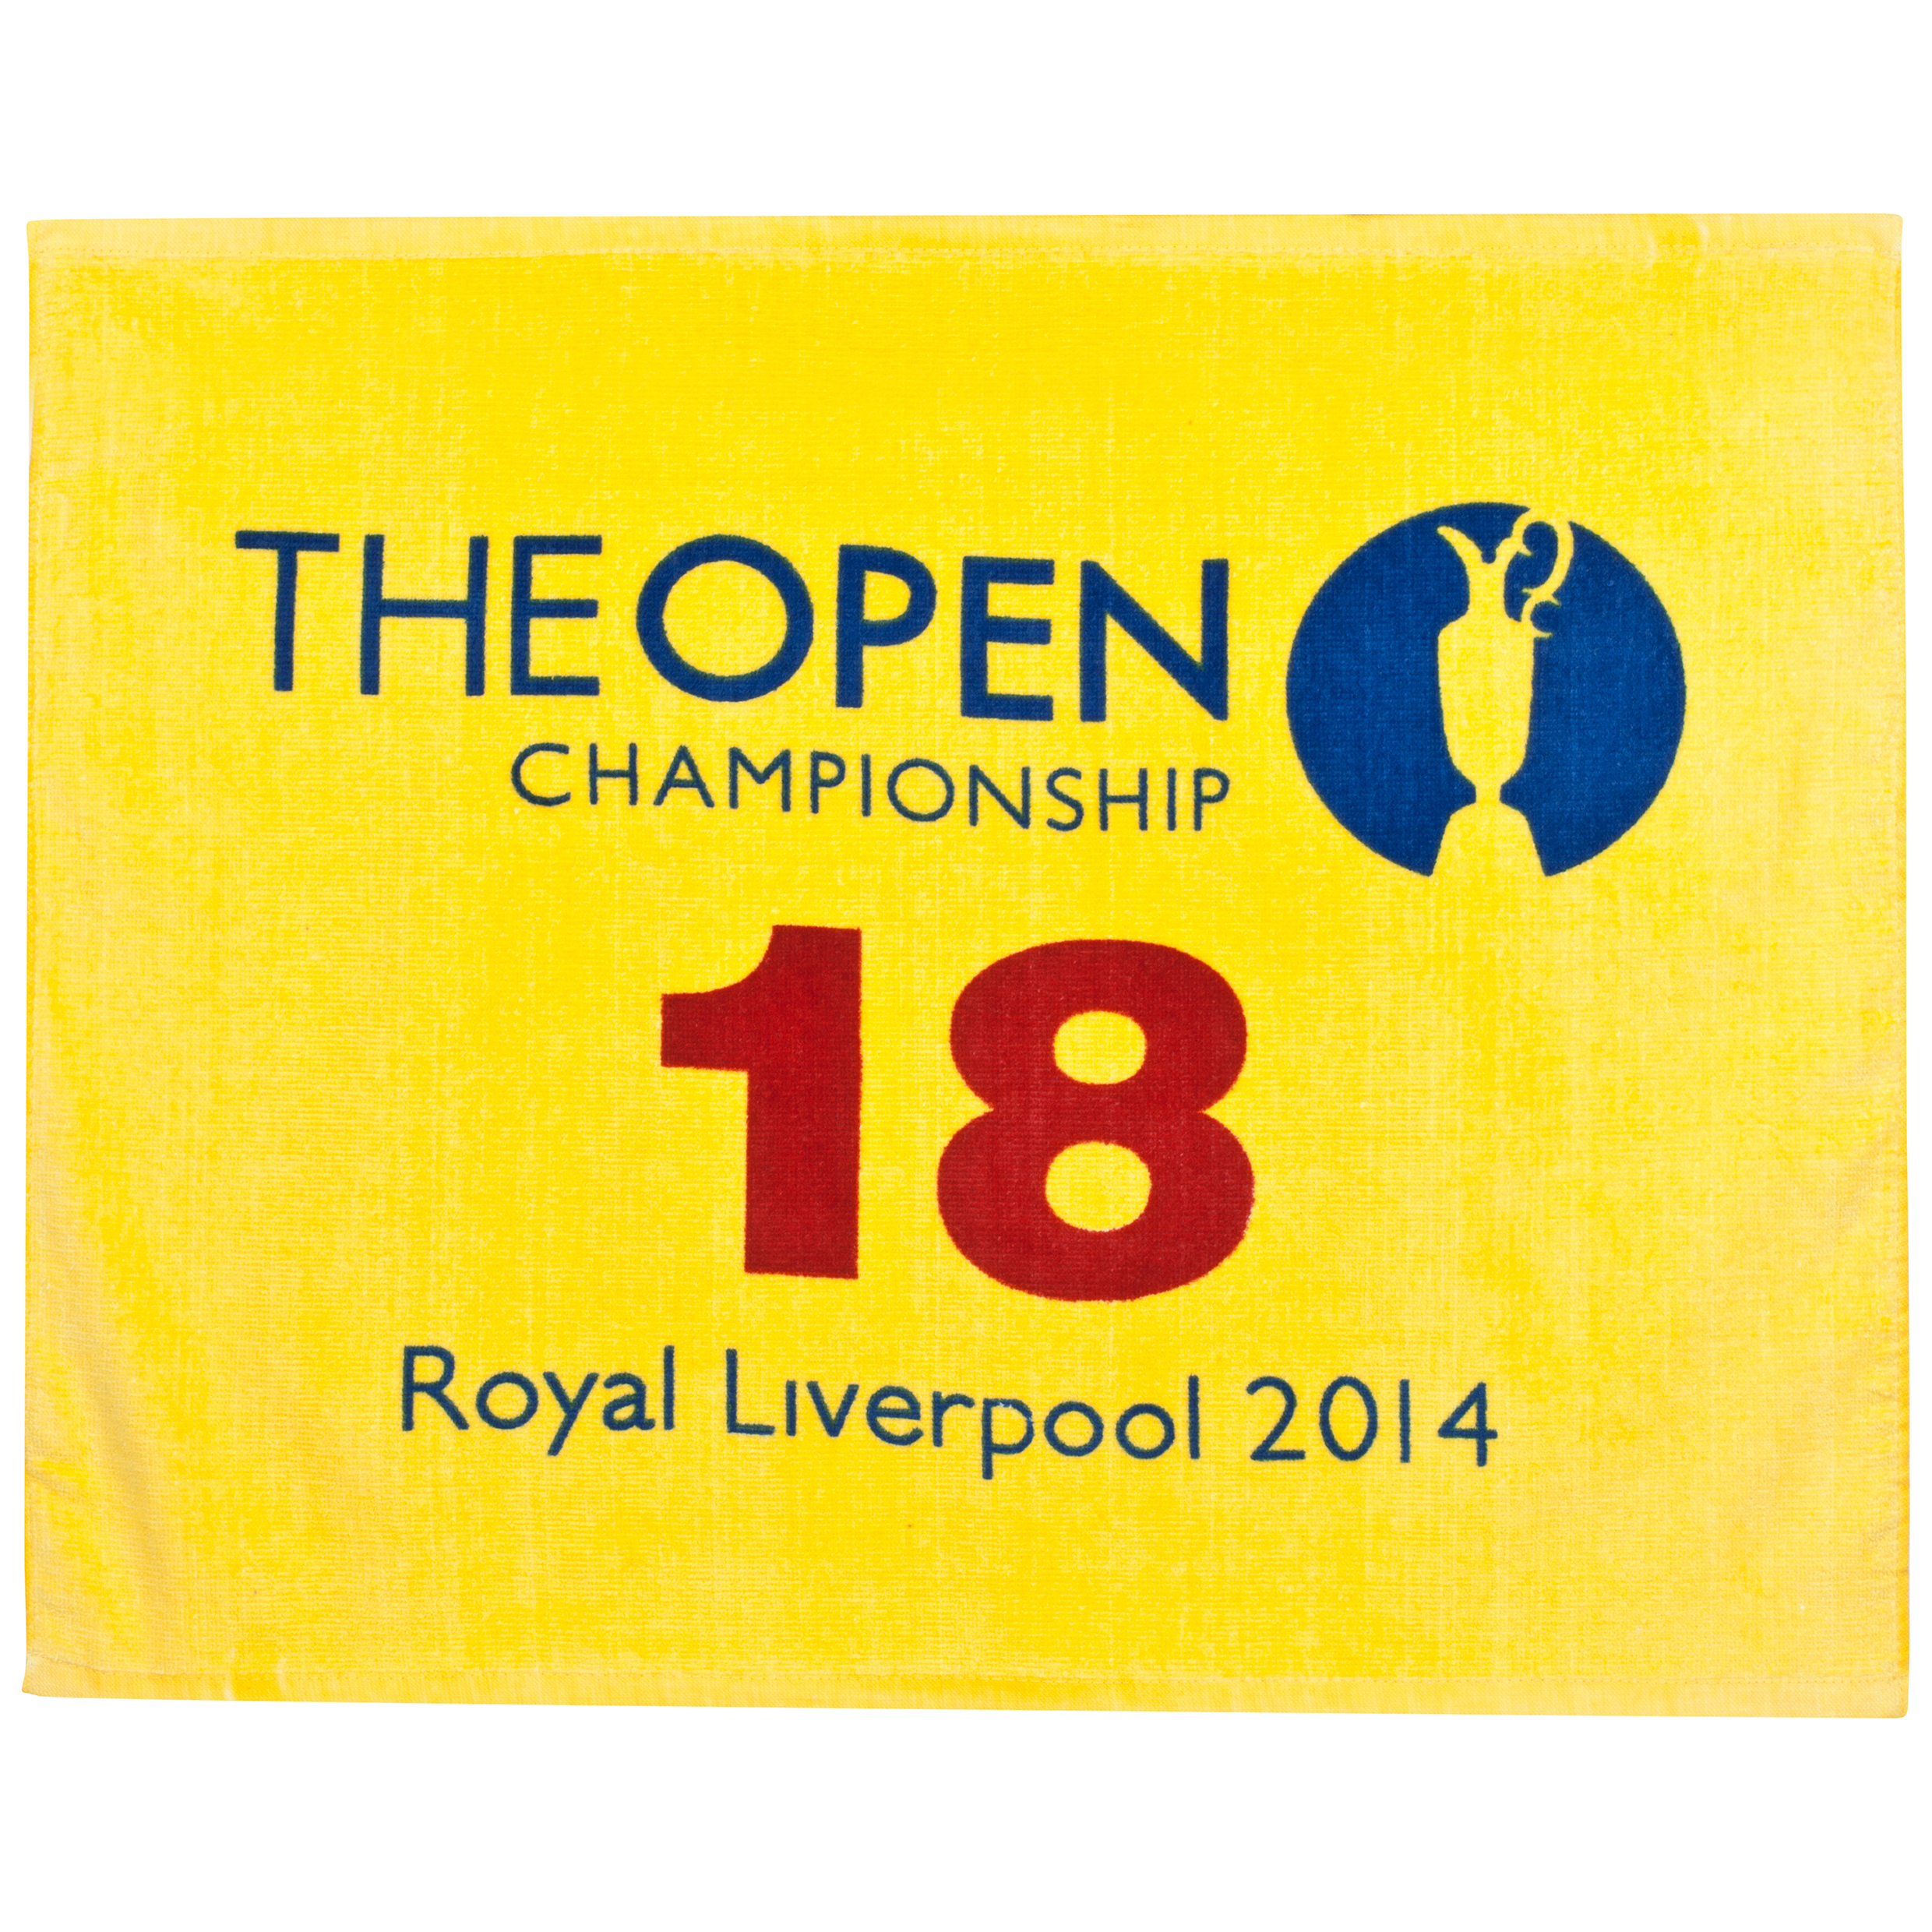 The Open Championship Royal Liverpool 2014 18th Green Yellow Pin Towel